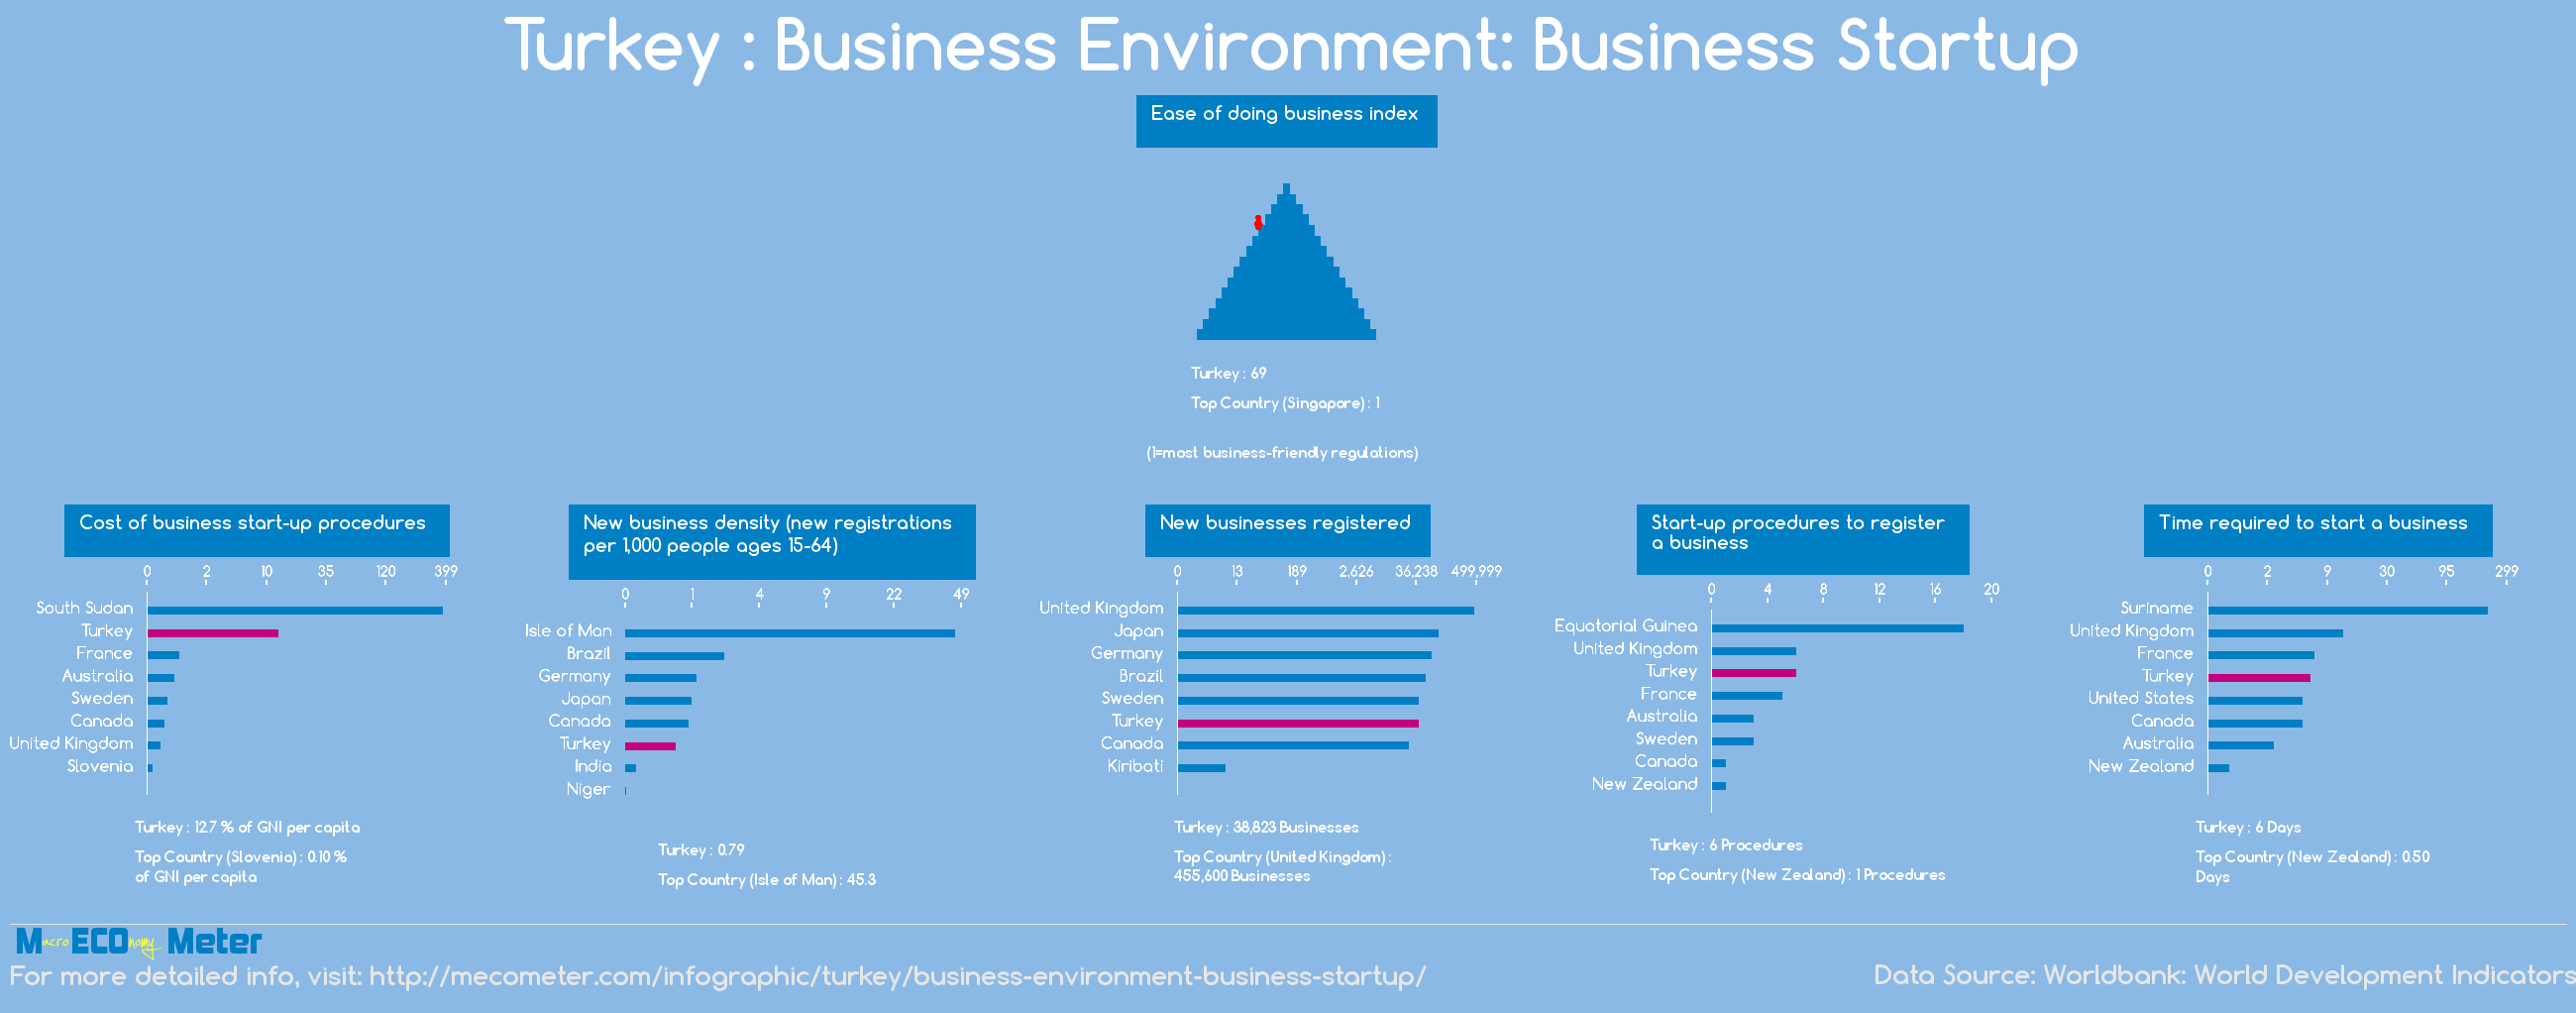 Turkey : Business Environment: Business Startup